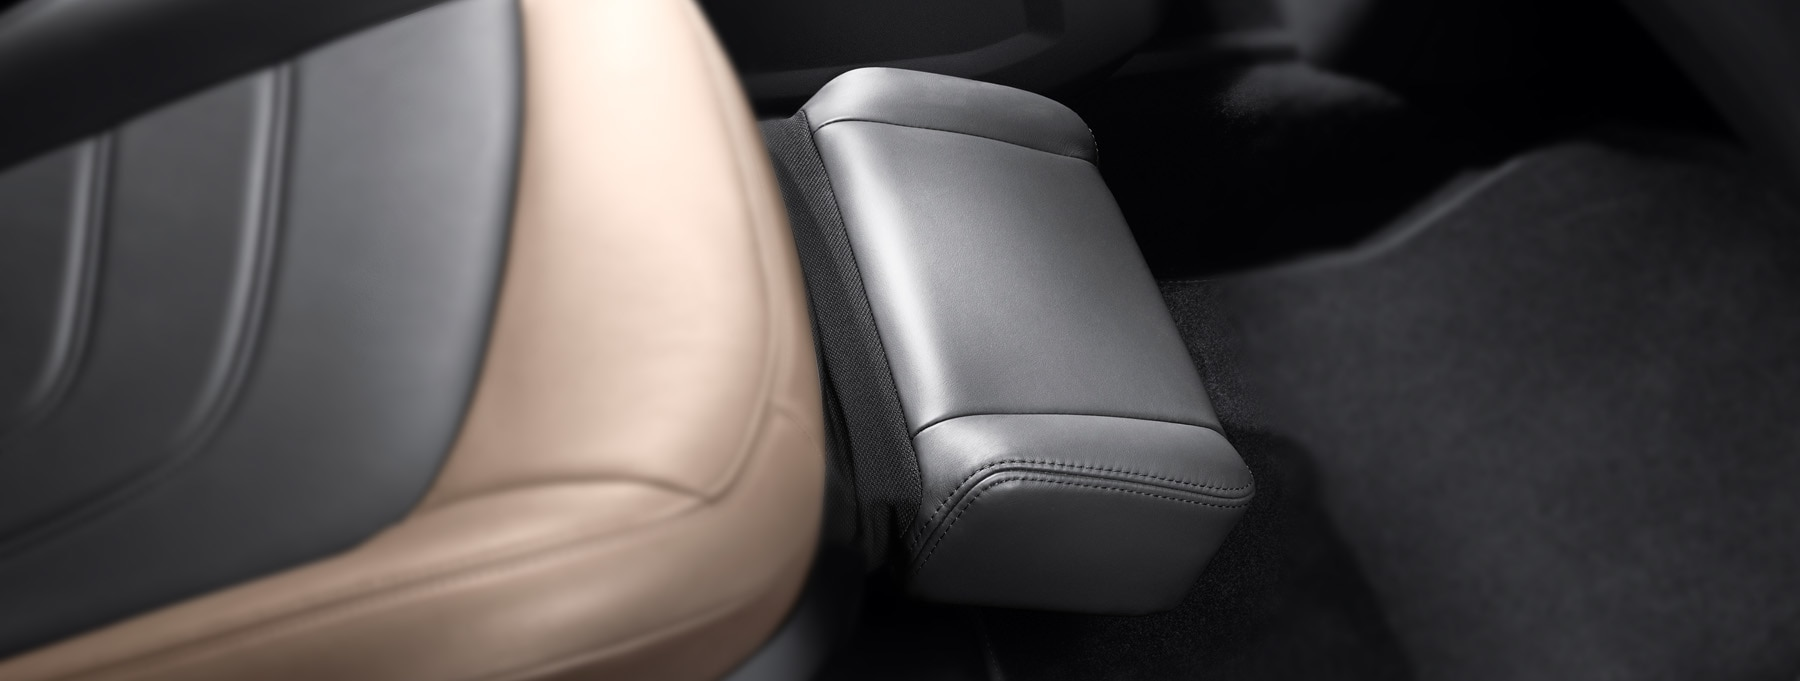 Comfort - Relax front passenger seat